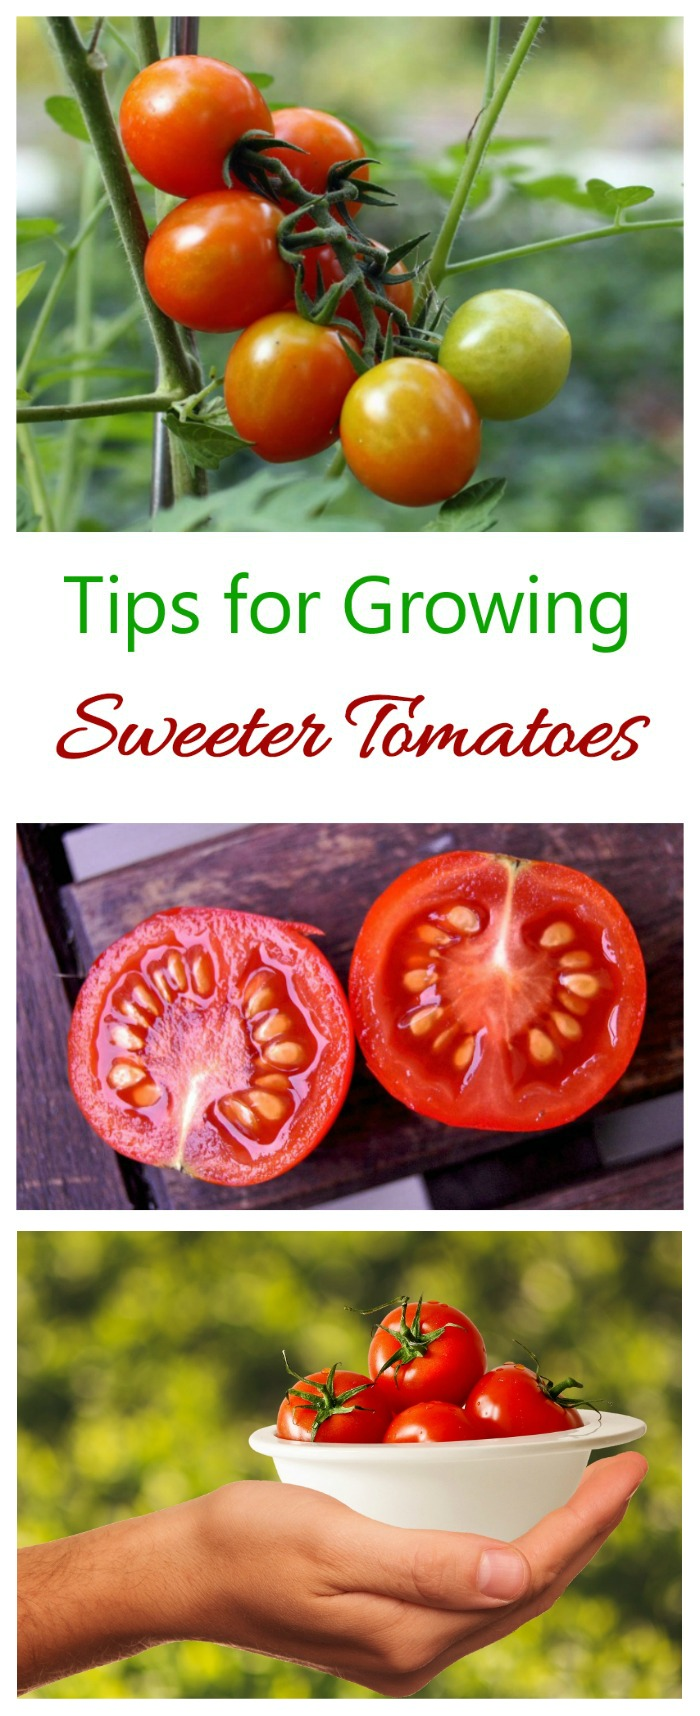 Sweet Tomatoes Tips Tricks Myths The Gardening Cook